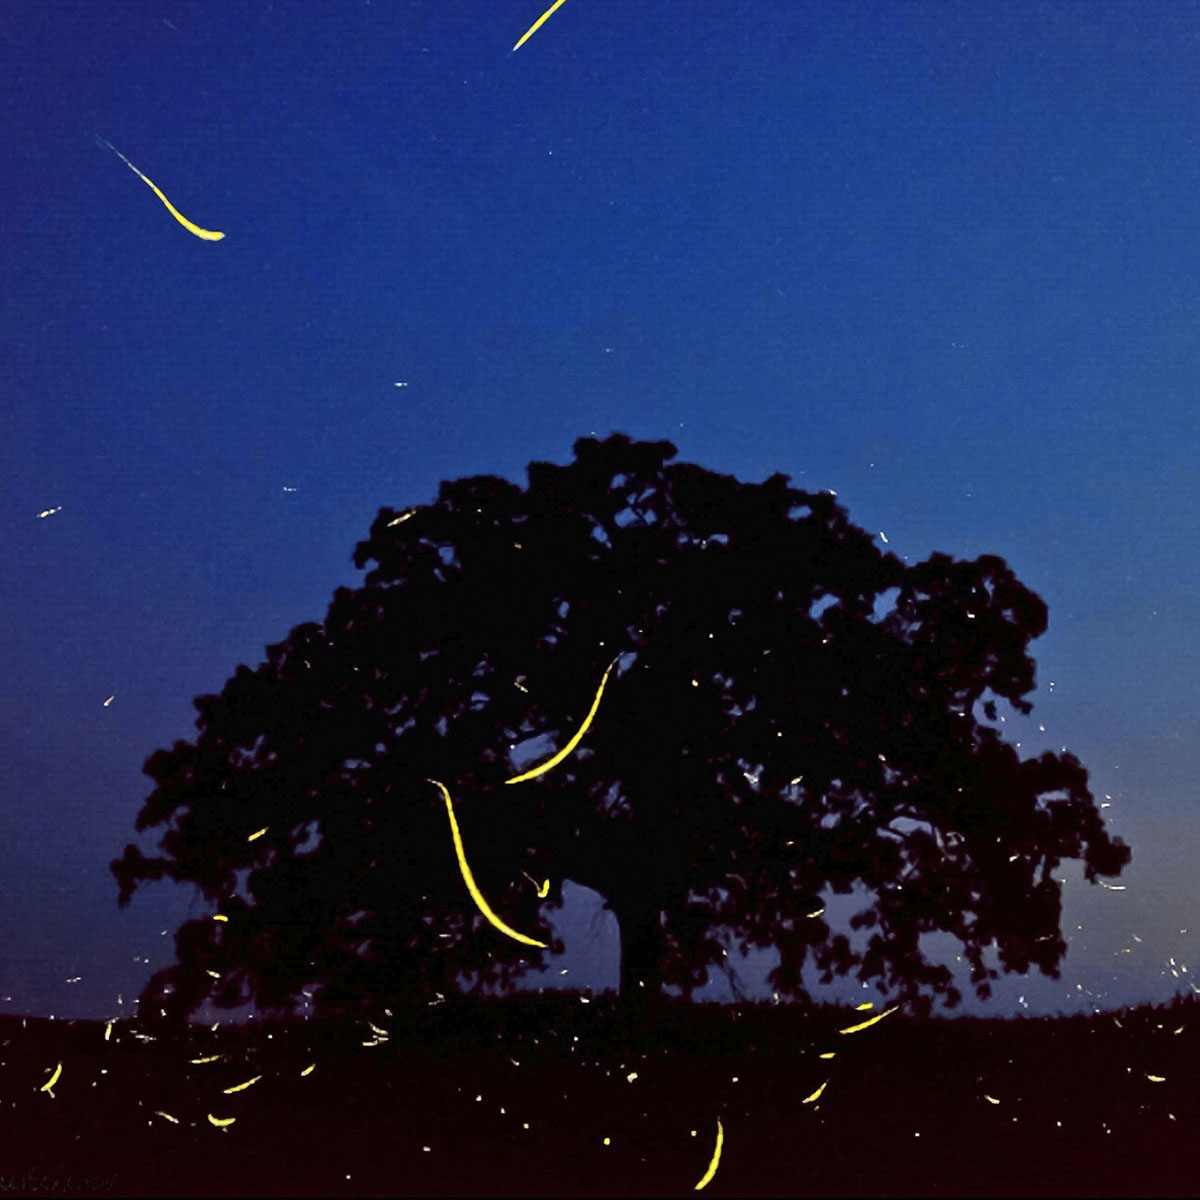 "July 2, 2012. In a timed exposure captured on an iPhone 4S using the iPhone app SlowShutter, the flight paths of fireflies leave yellow brush strokes as they fly in and around ""That Tree"" at dusk."